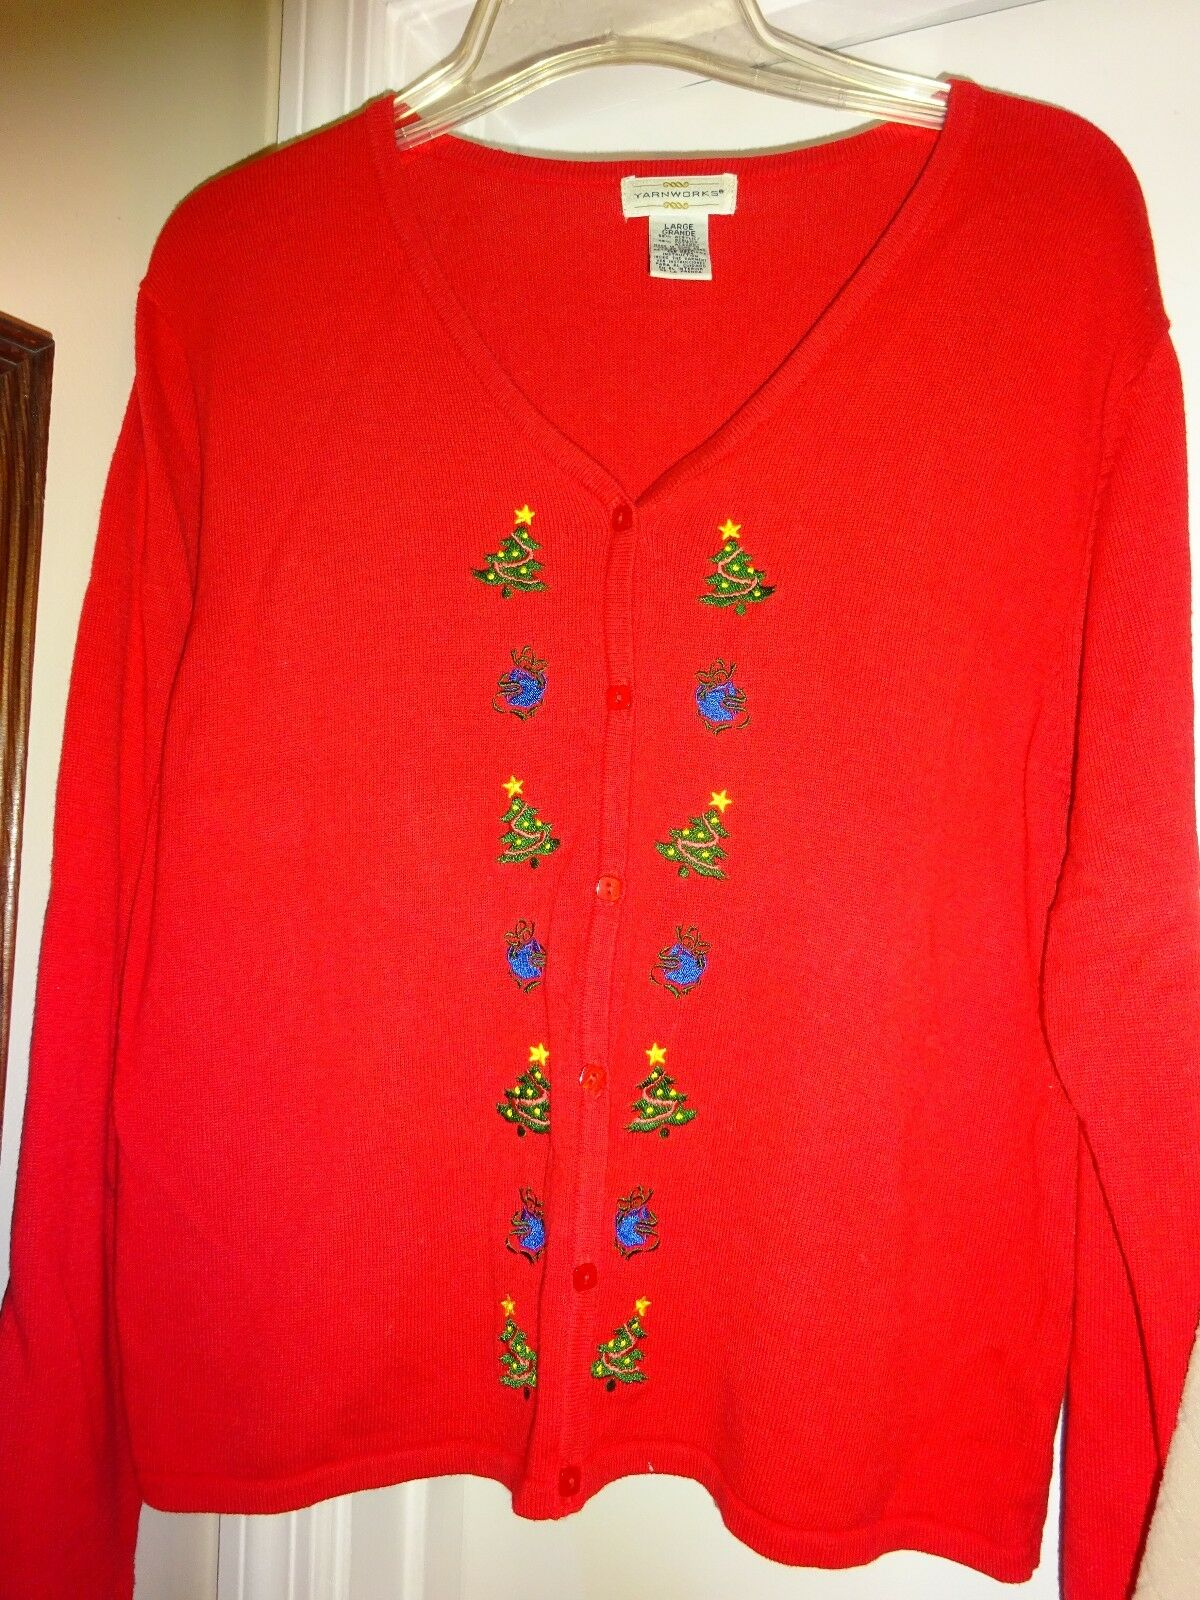 Yarnworks Yarn Works Ladies Red Size Large Button Front Sweater Acrylic Cotton